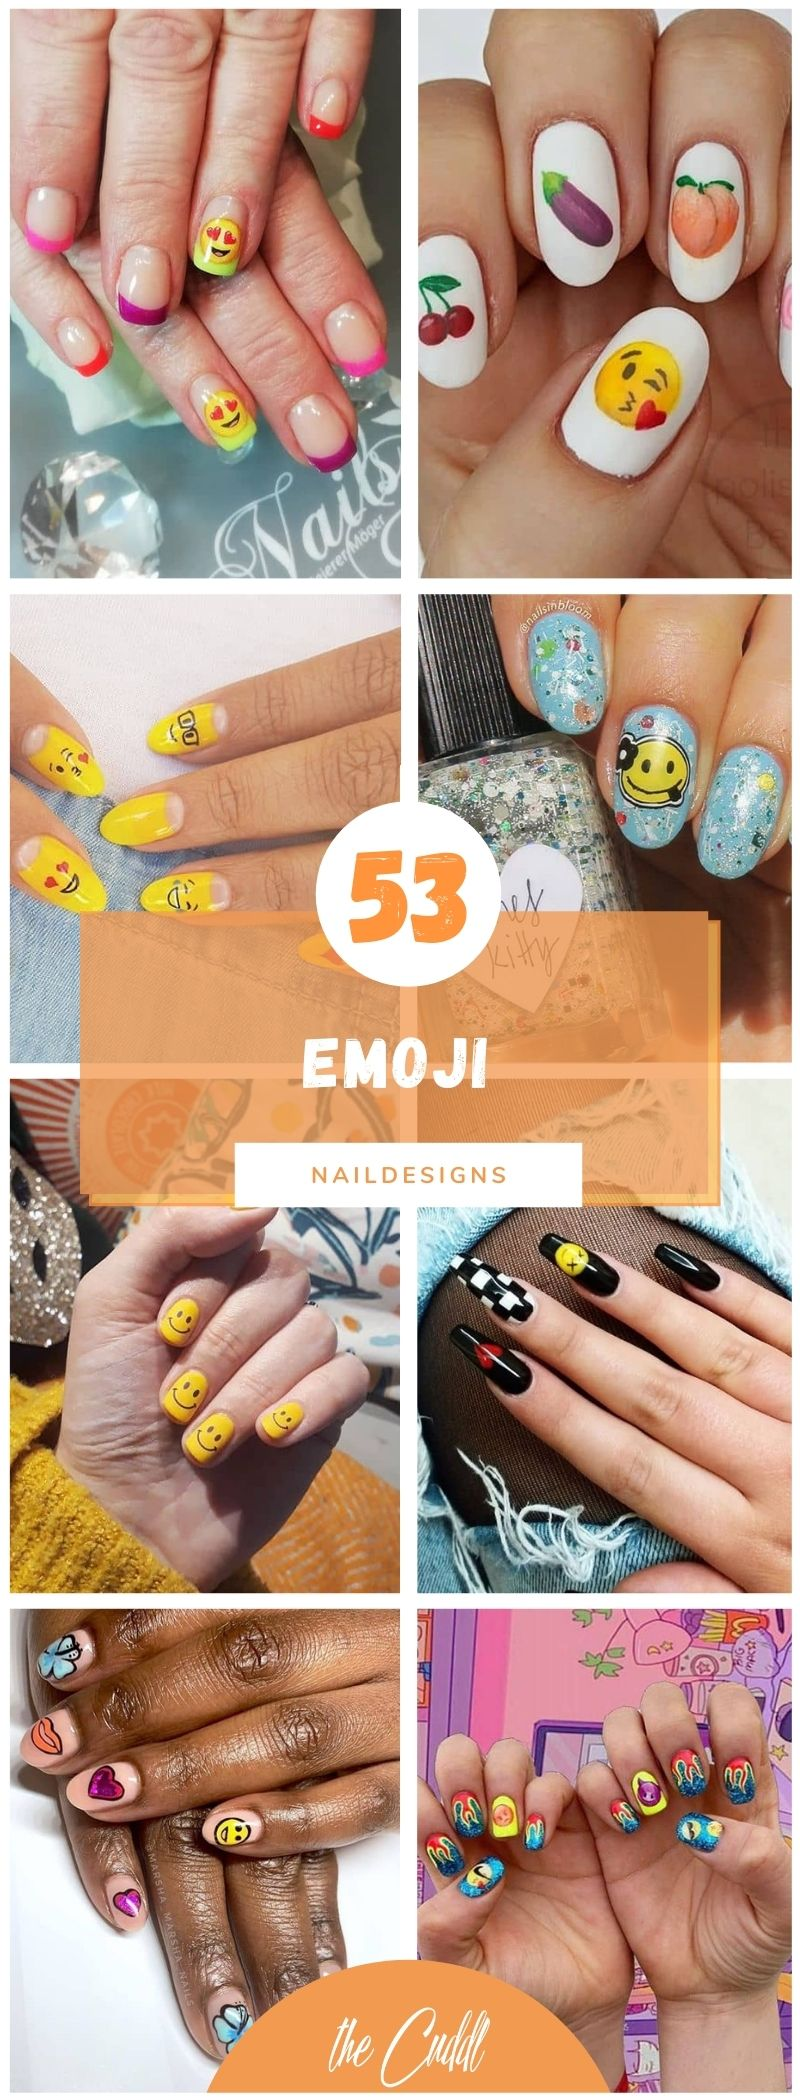 50 Unique Emoji Nail Ideas to Revive a Boring Manicure